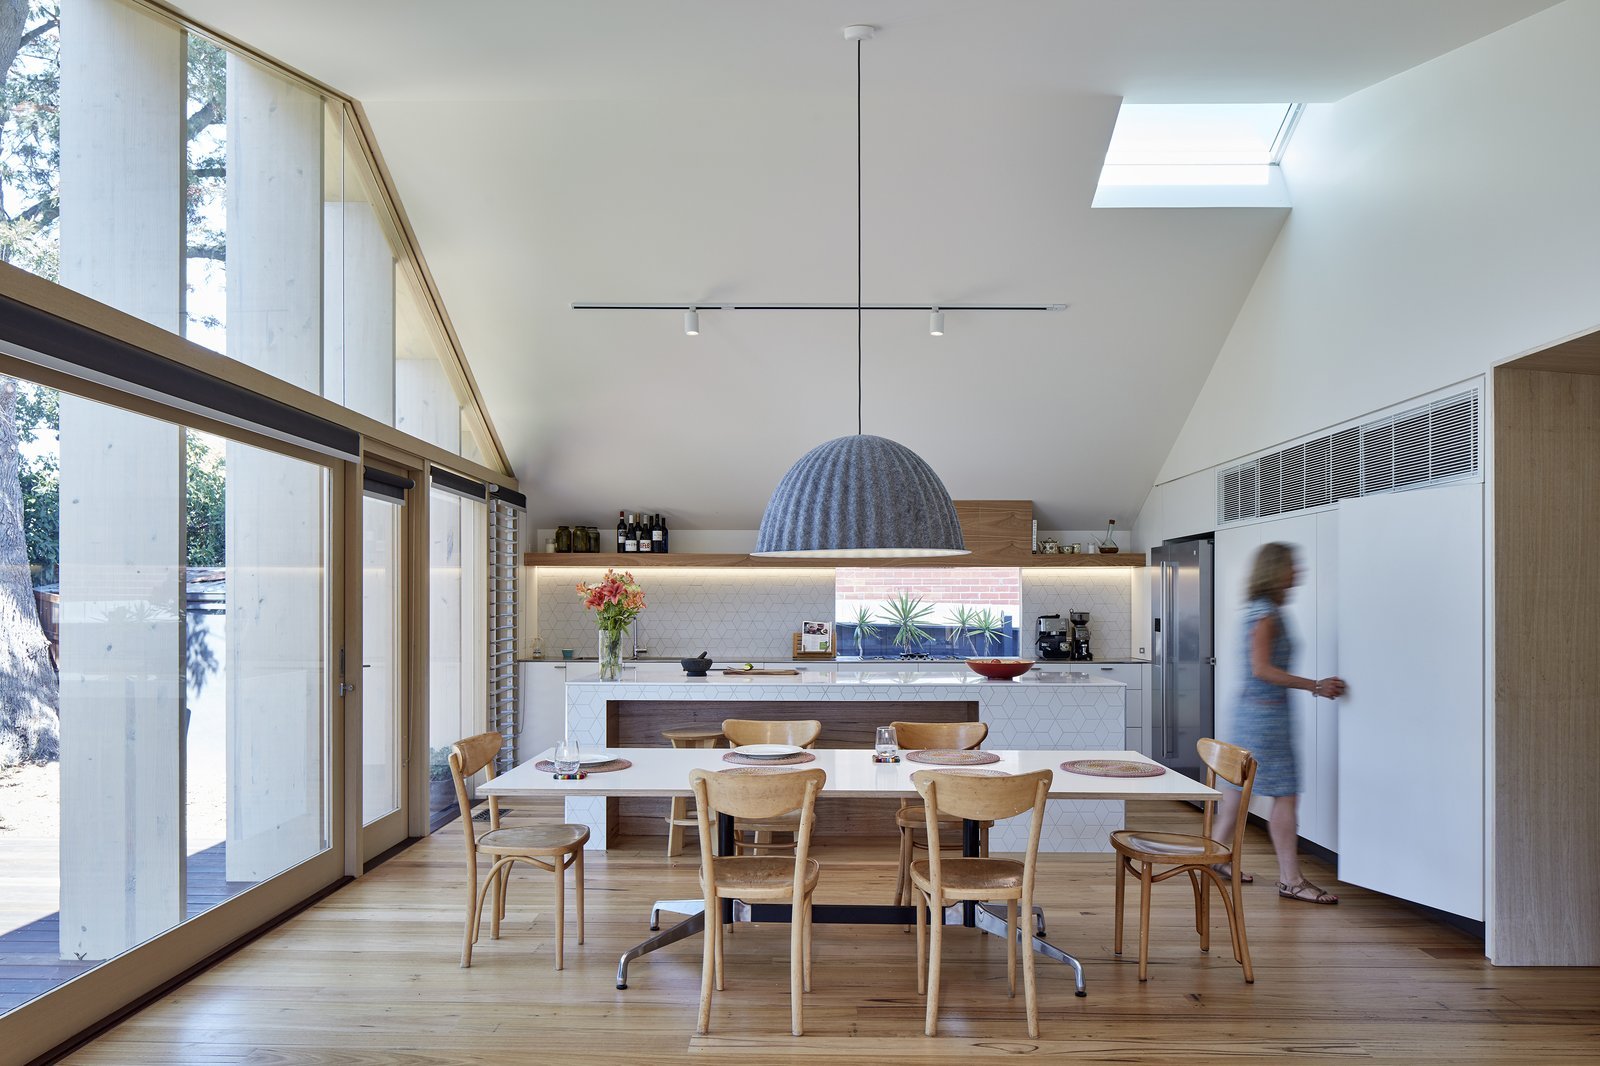 Strategically placed openings and an automated roof window at the apex of the slanted ceiling can be opened to release hot air during the summer months.